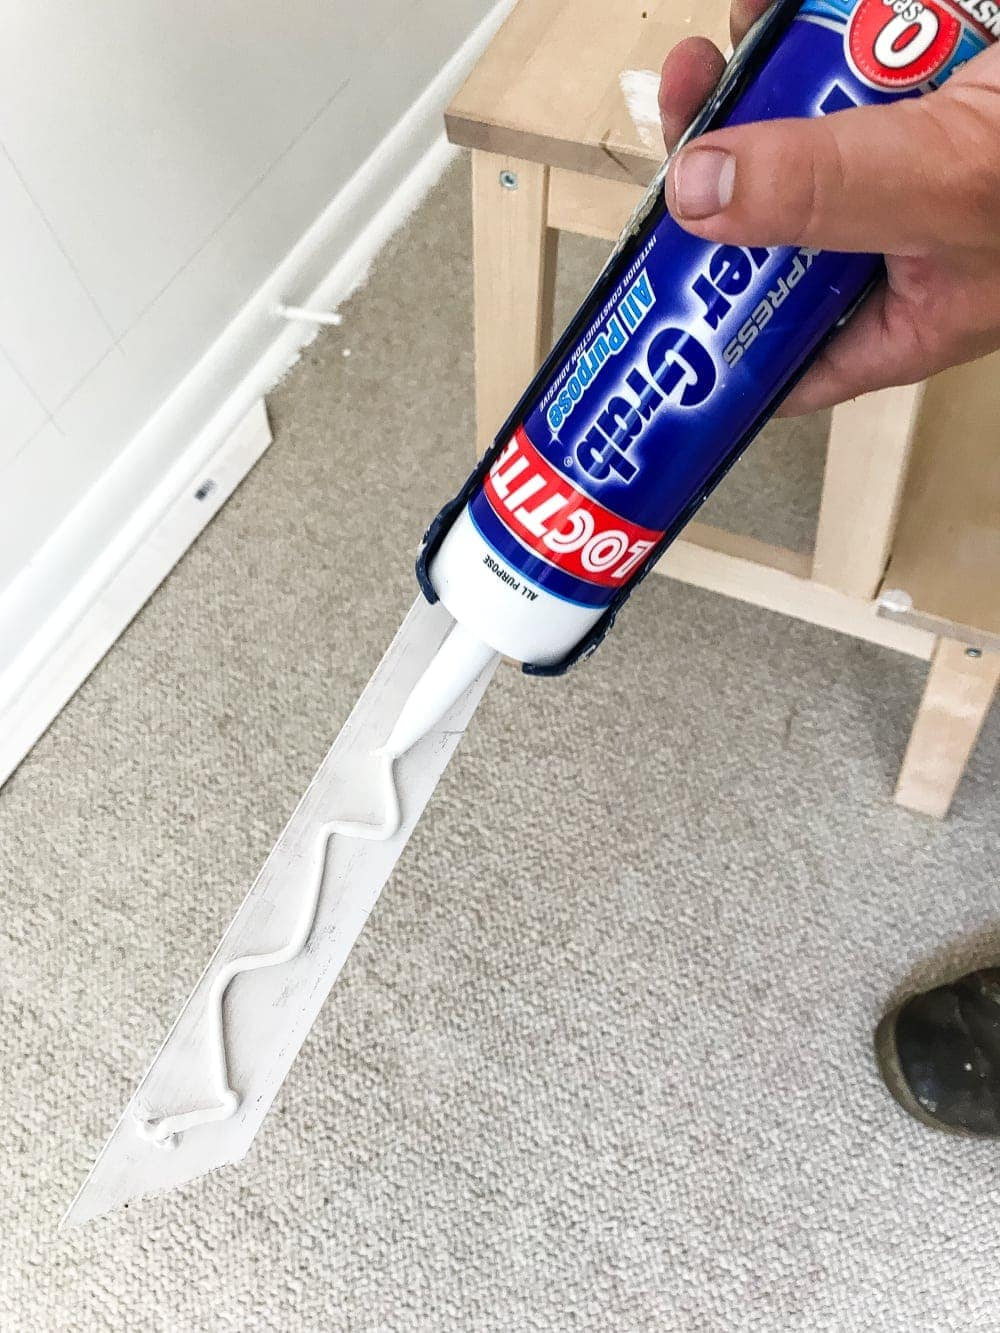 use construction adhesive to make attaching picture frame molding to walls easier